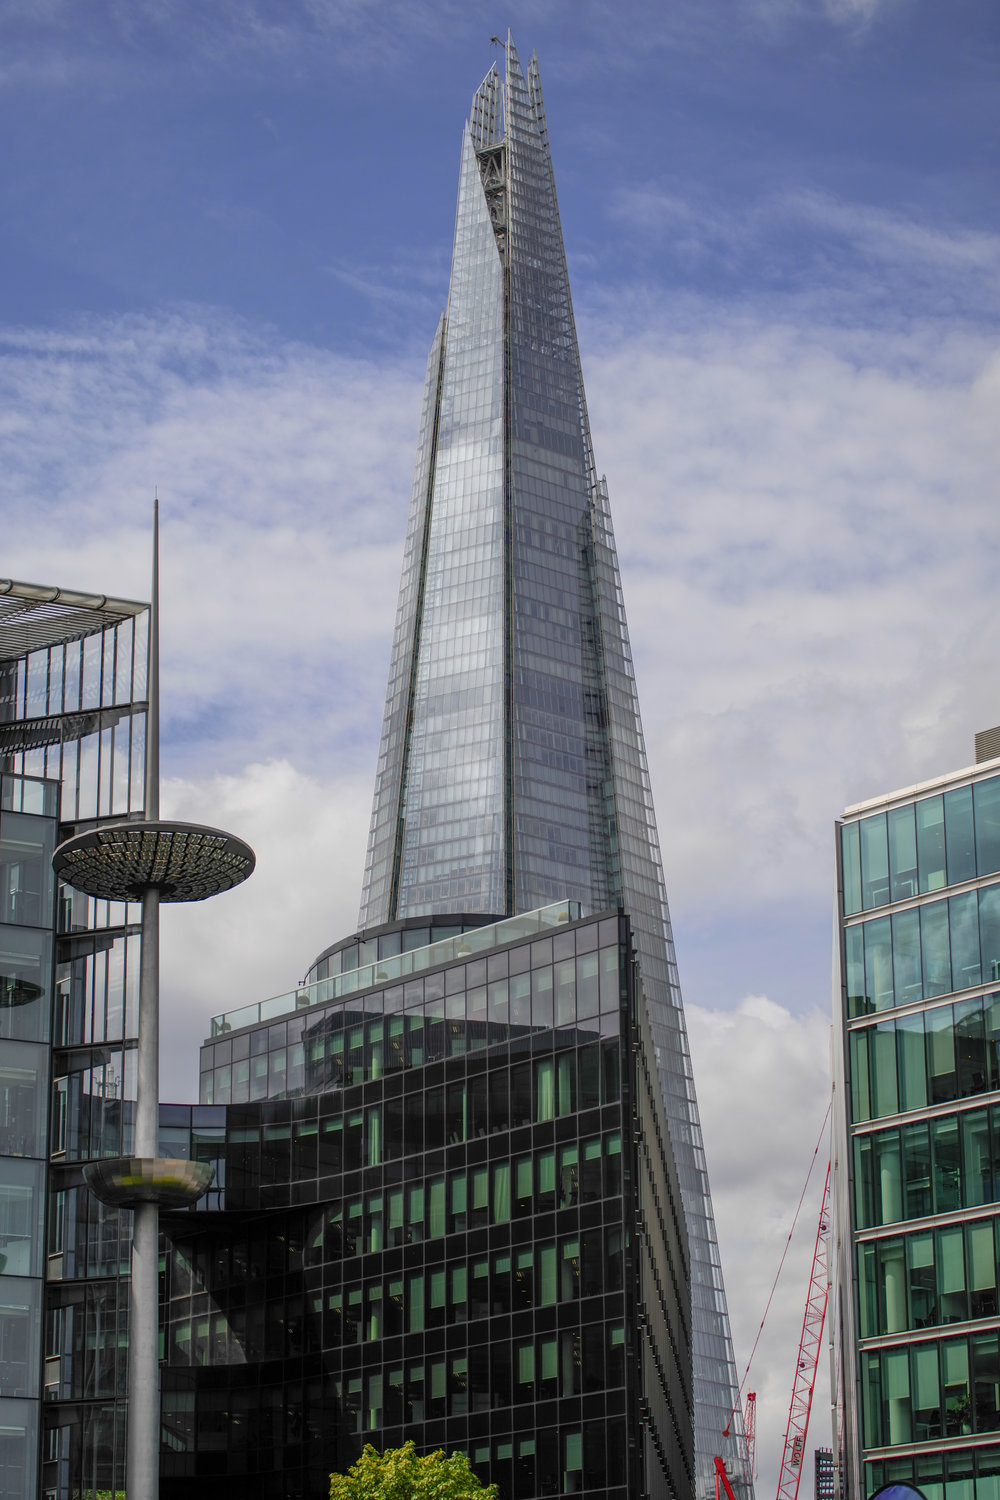 The Shard again, spoiled by the omnipresent red crane. 55-135mm APO-Vario-Elmar-TL at 55mm